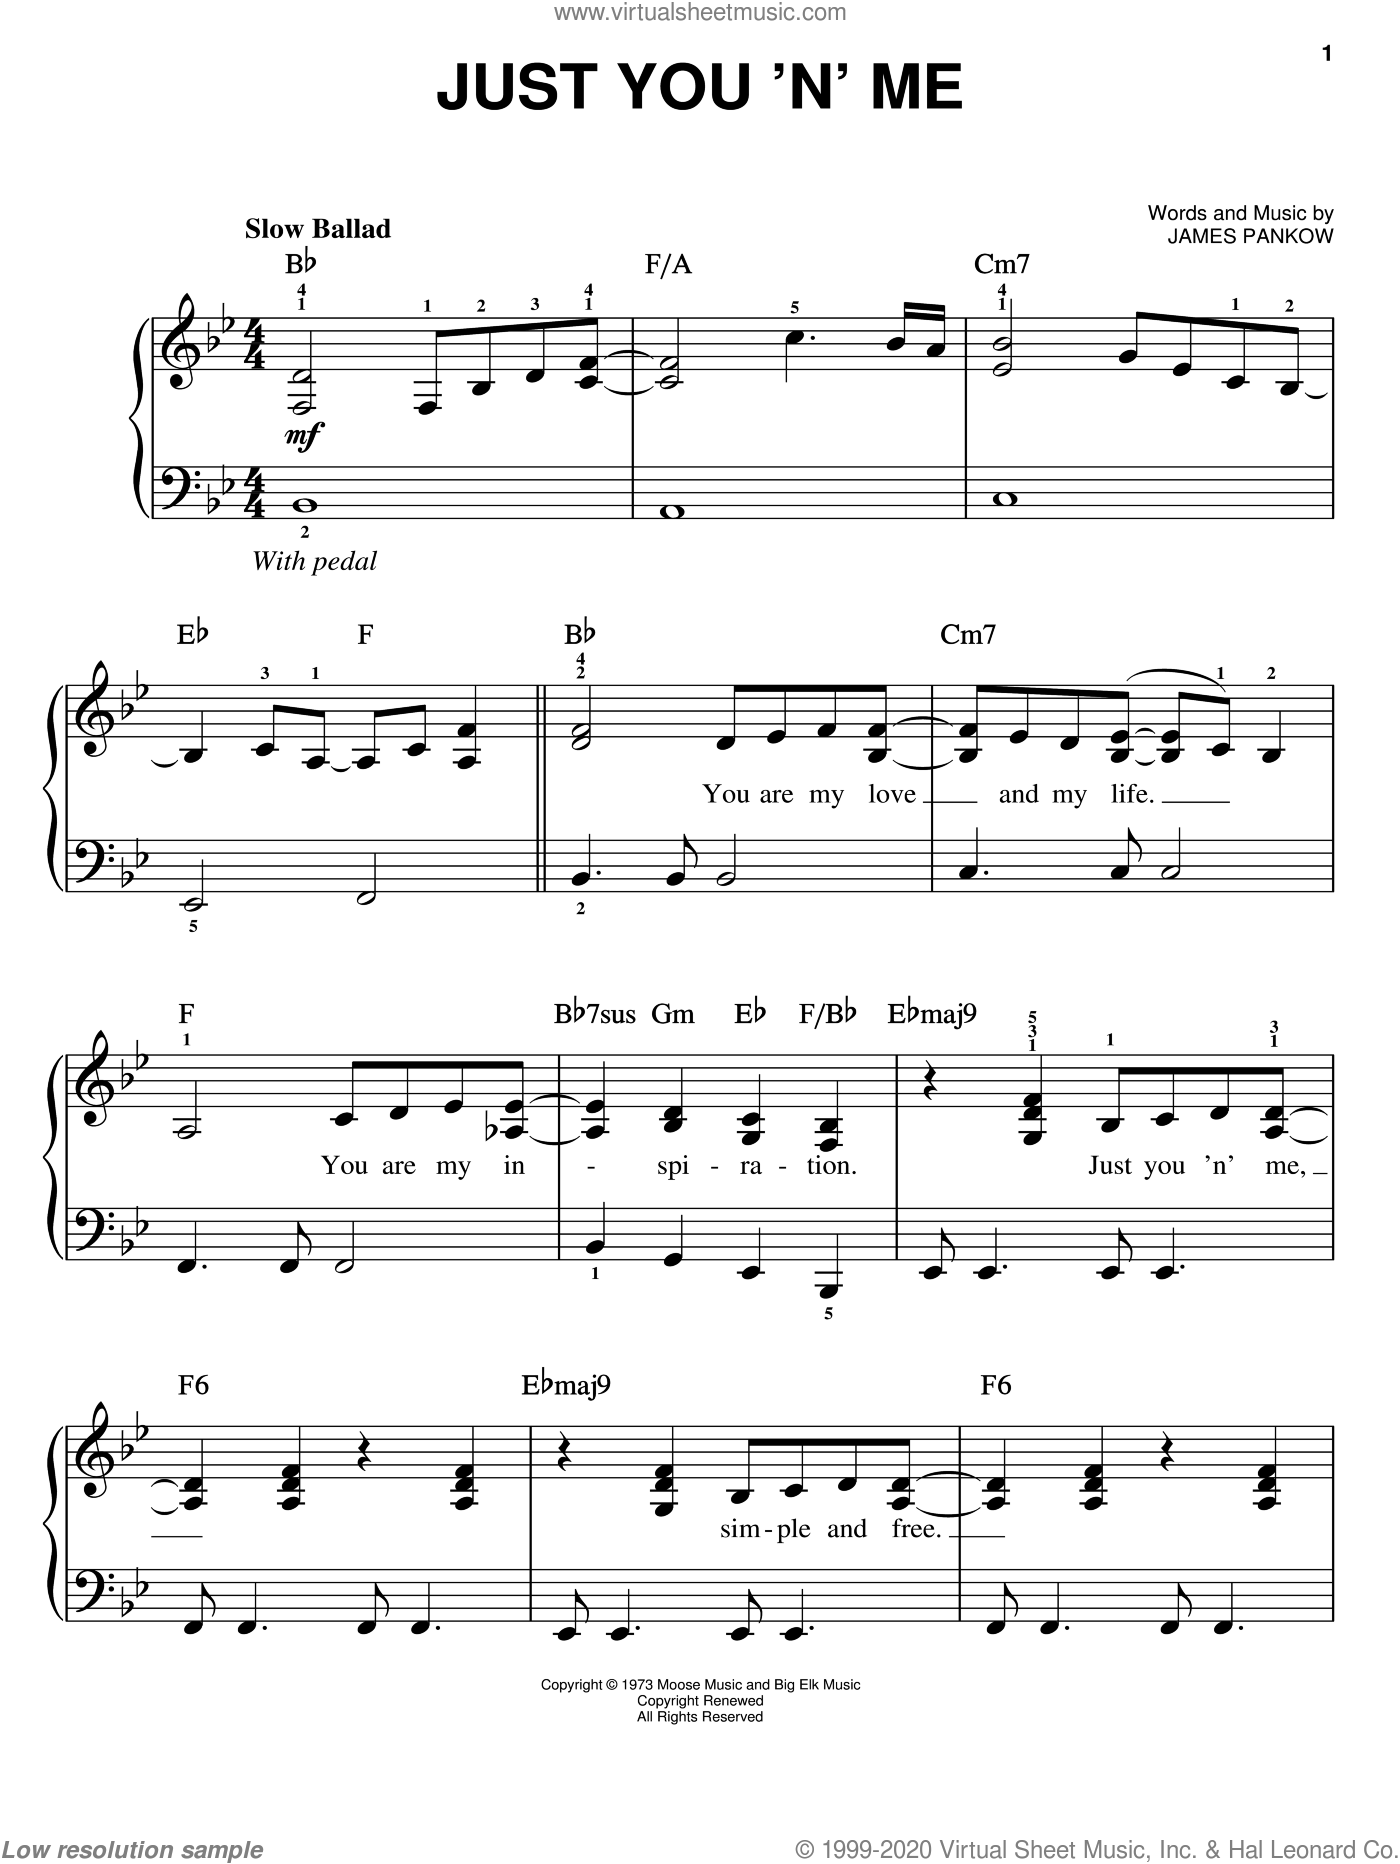 Just You 'N' Me sheet music for piano solo (chords) by James Pankow